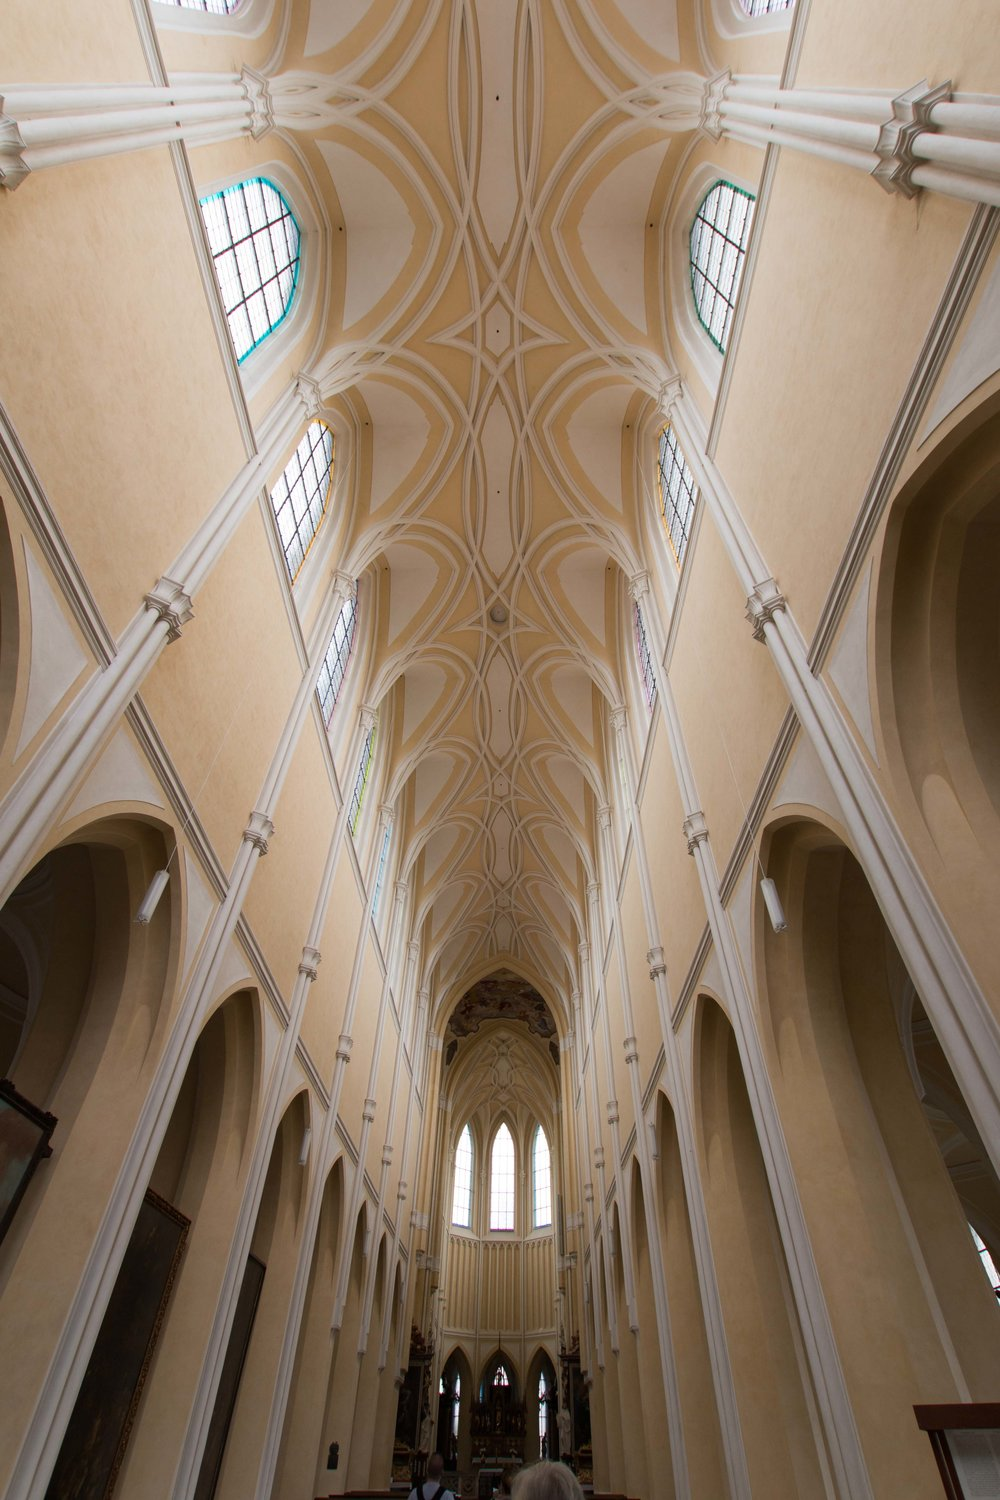 The long nave of the church